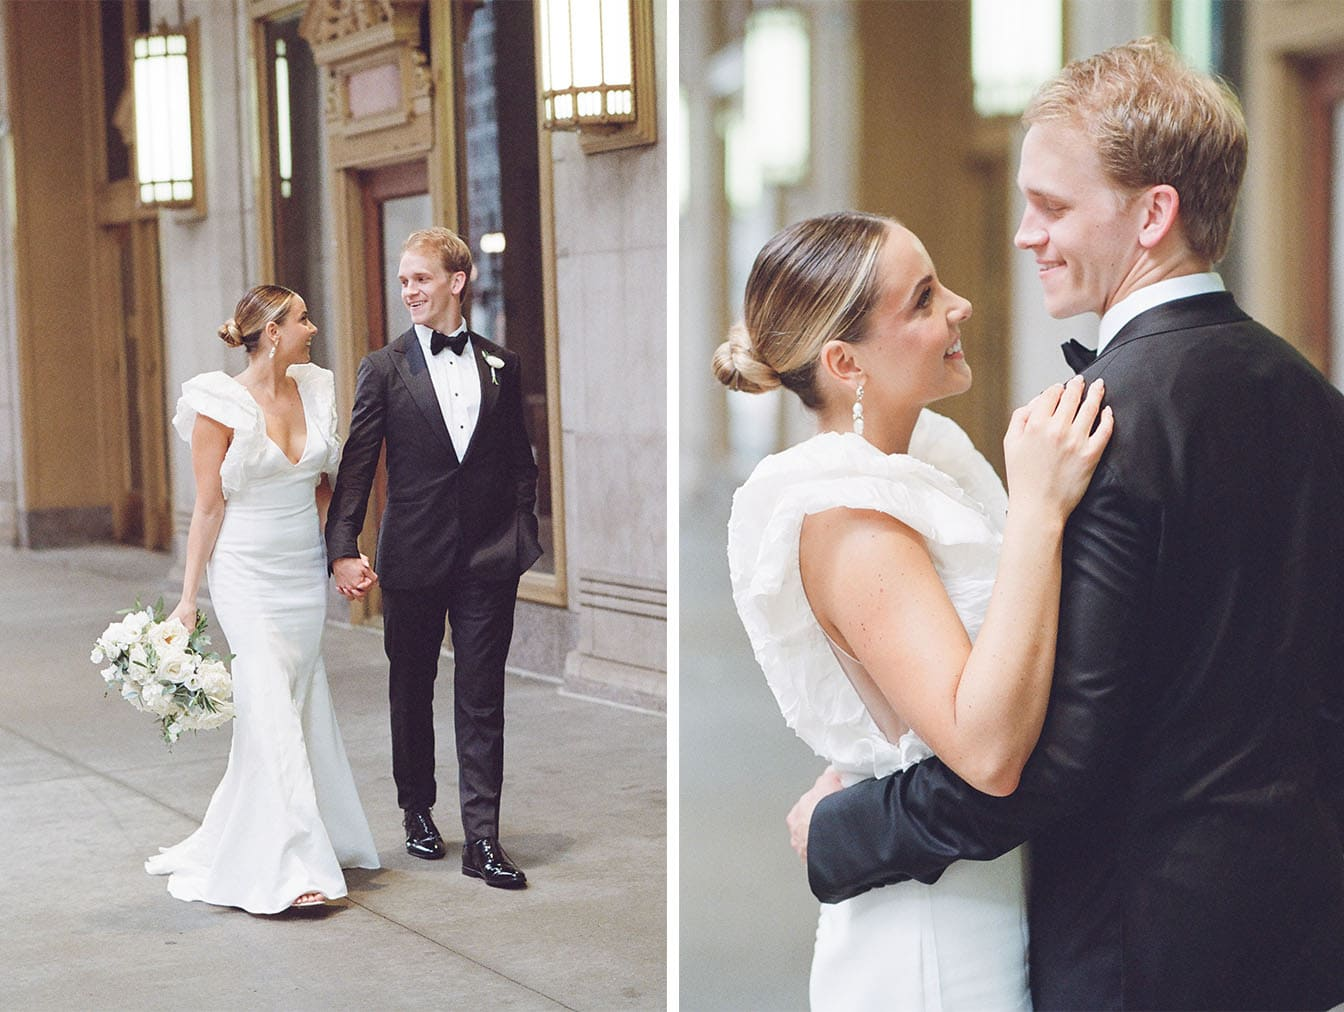 Bride and groom walking at Lyric Opera House in Chicago